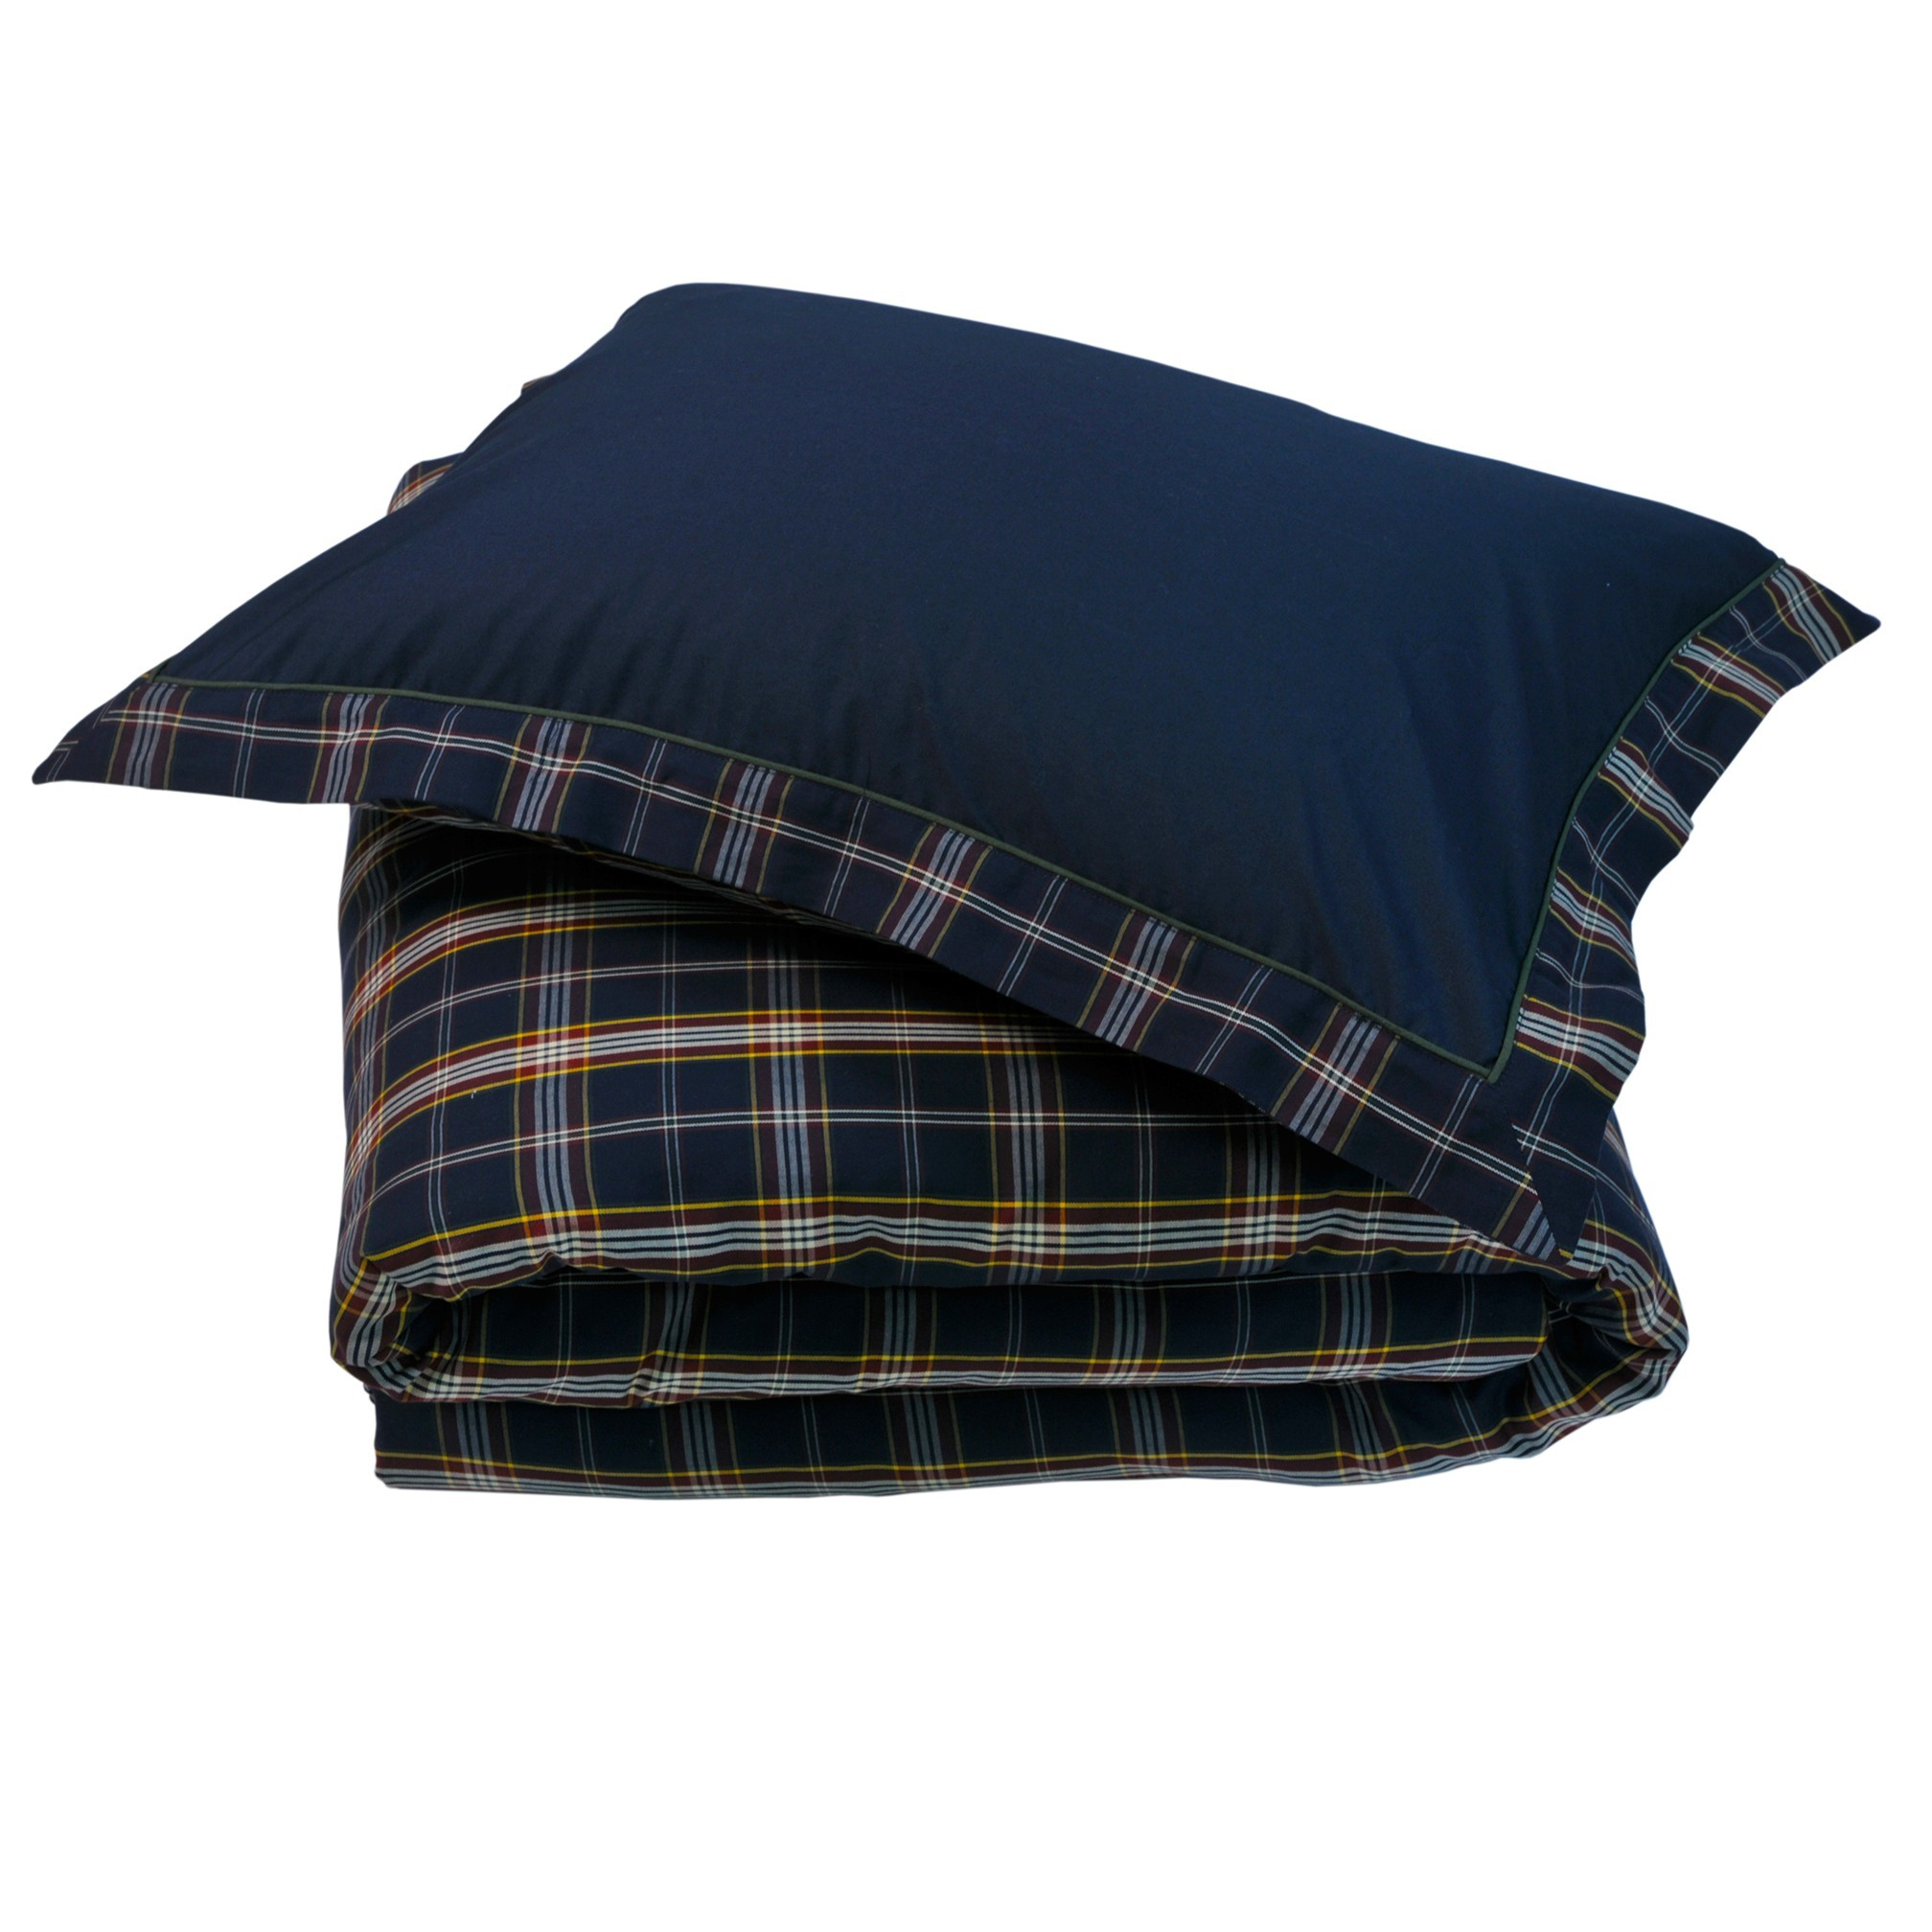 Комплекты Постельное белье 2 спальное евро Casual Avenue Oxford Navy Tartan темно-синее elitnoe-postelnoe-belie-oxford-navy-tartan-deep-blue-ot-casual-avenue-turtsiya.jpg